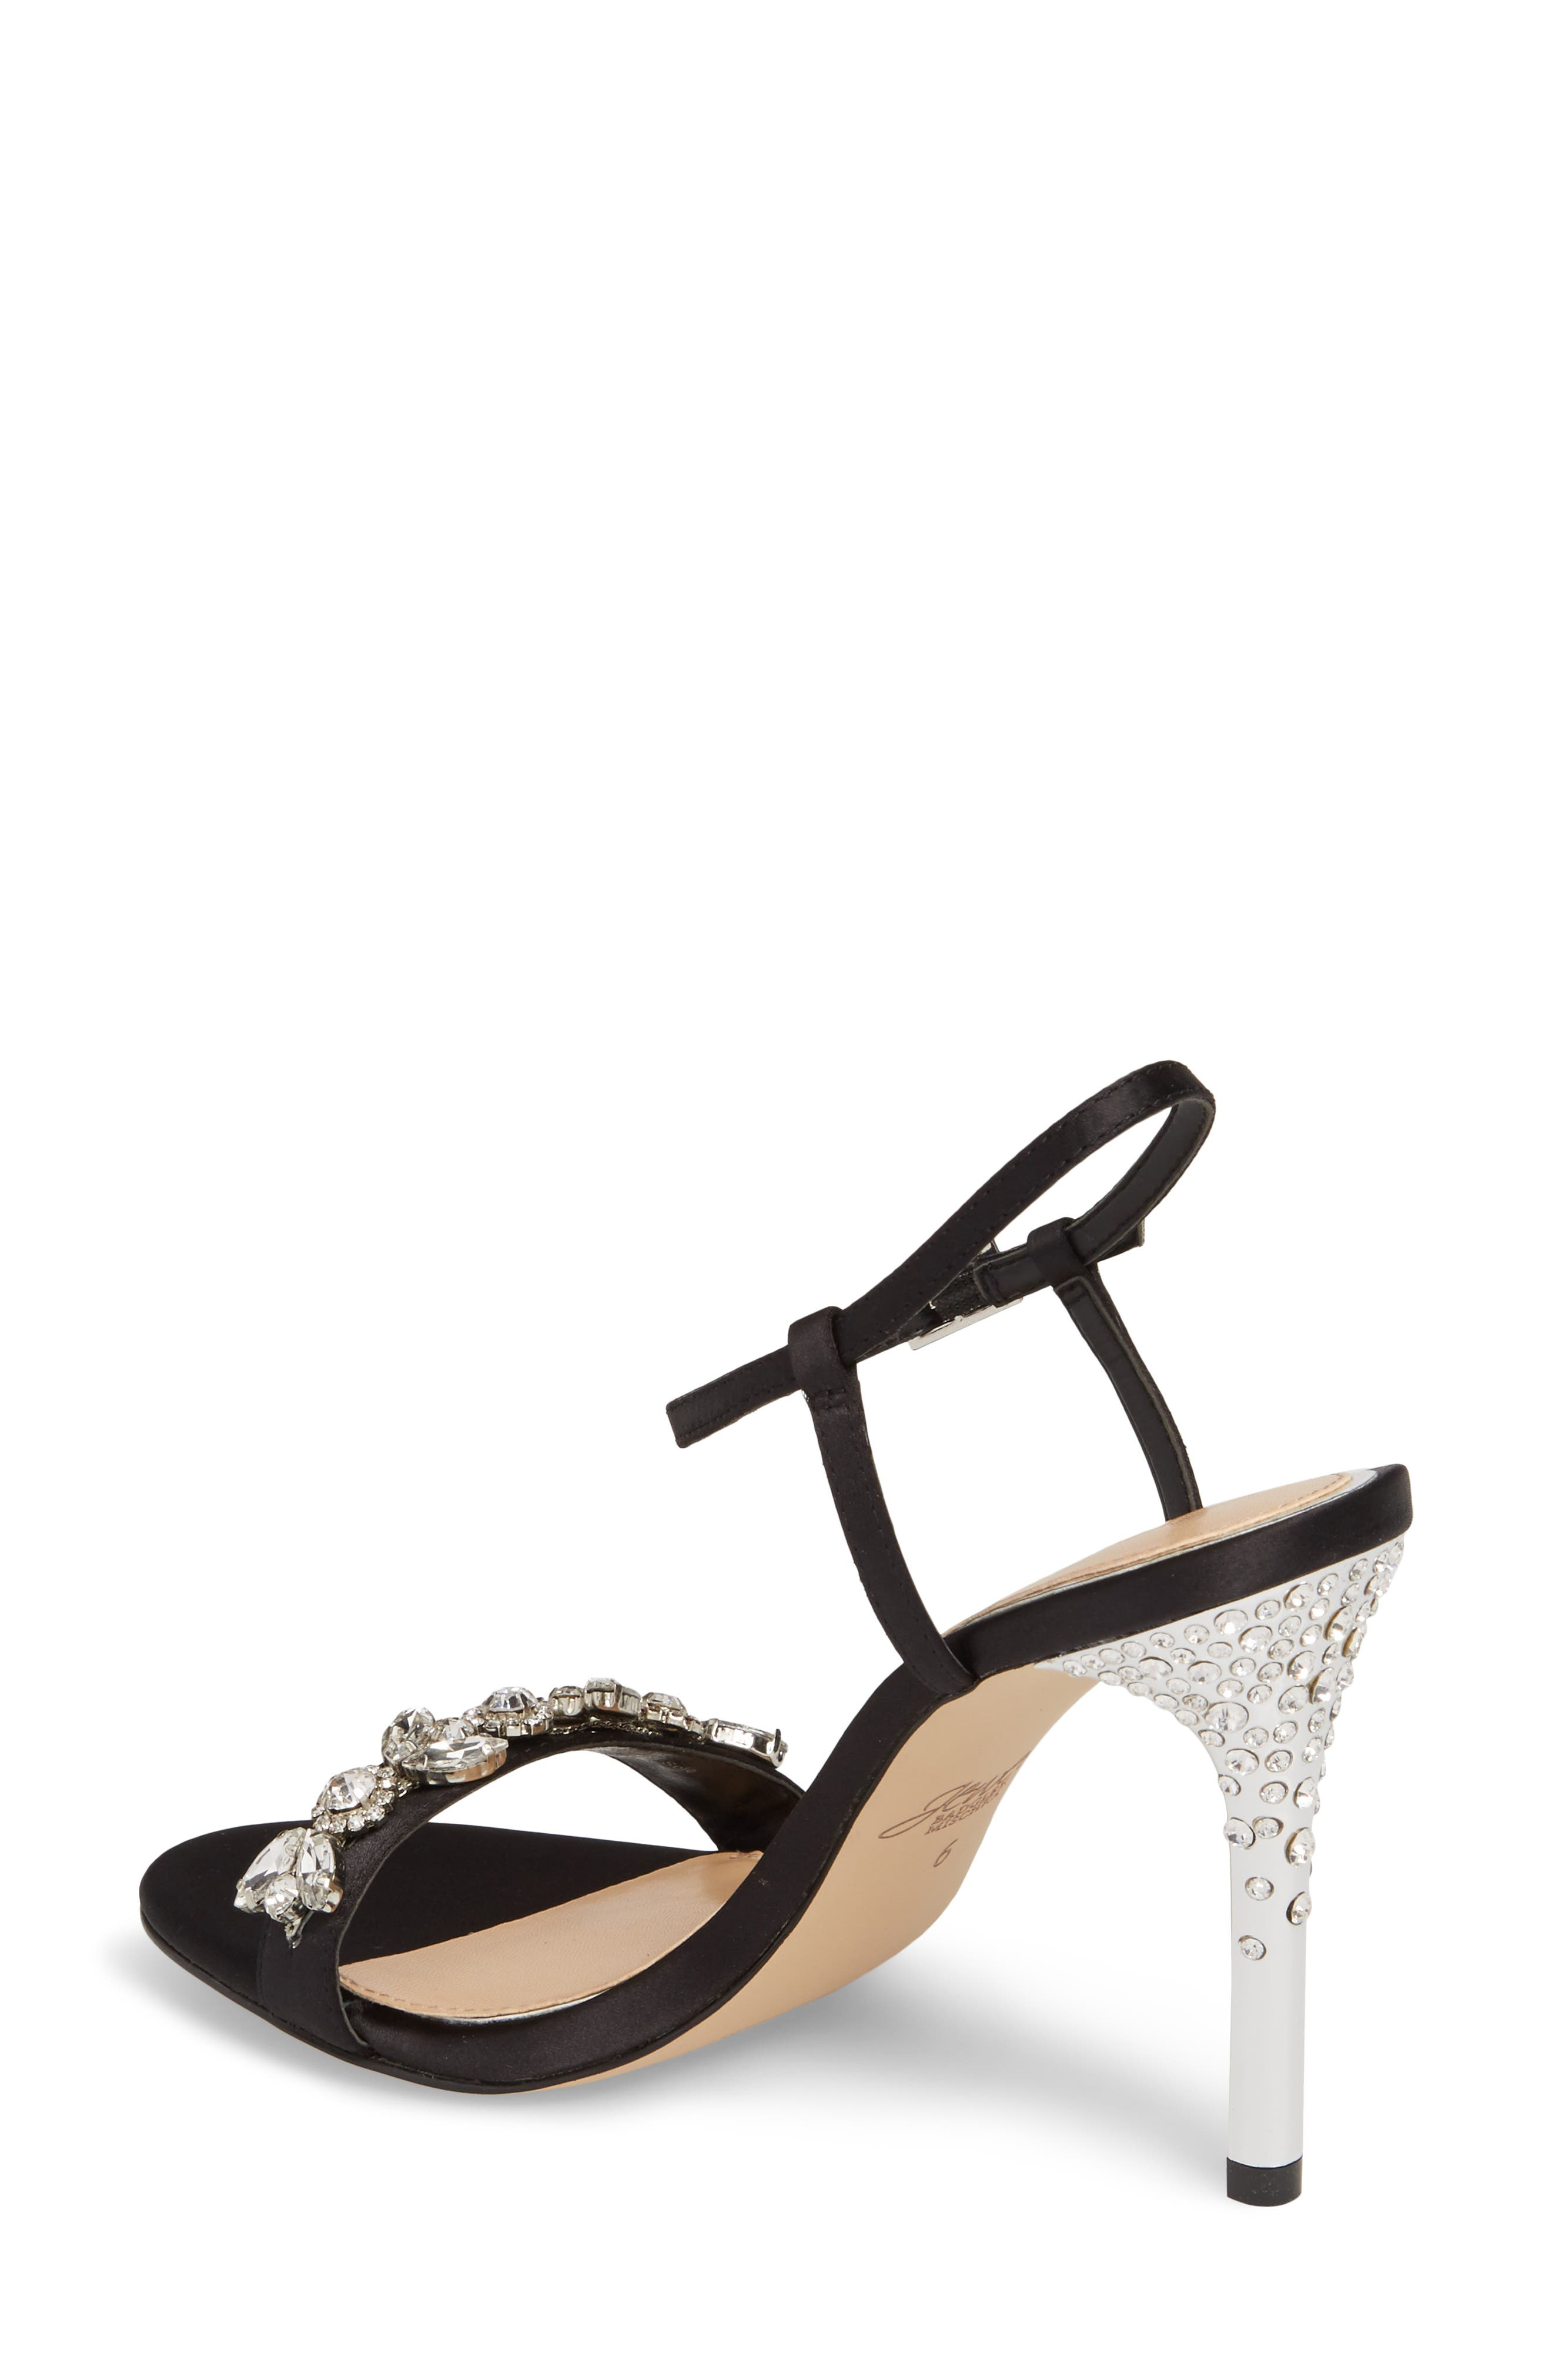 Tex Ankle Strap Sandal,                             Alternate thumbnail 2, color,                             Black Satin